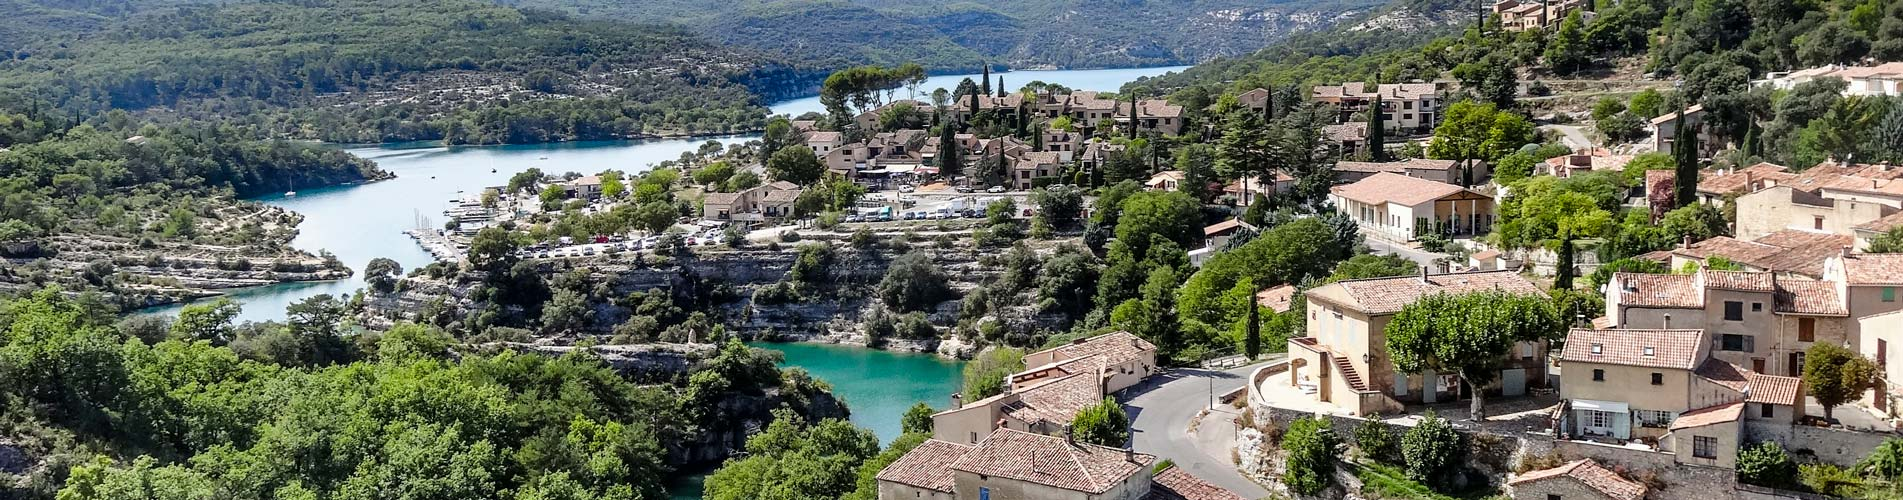 Tourism Provence Cities And Villages Of Provence Discover Provence